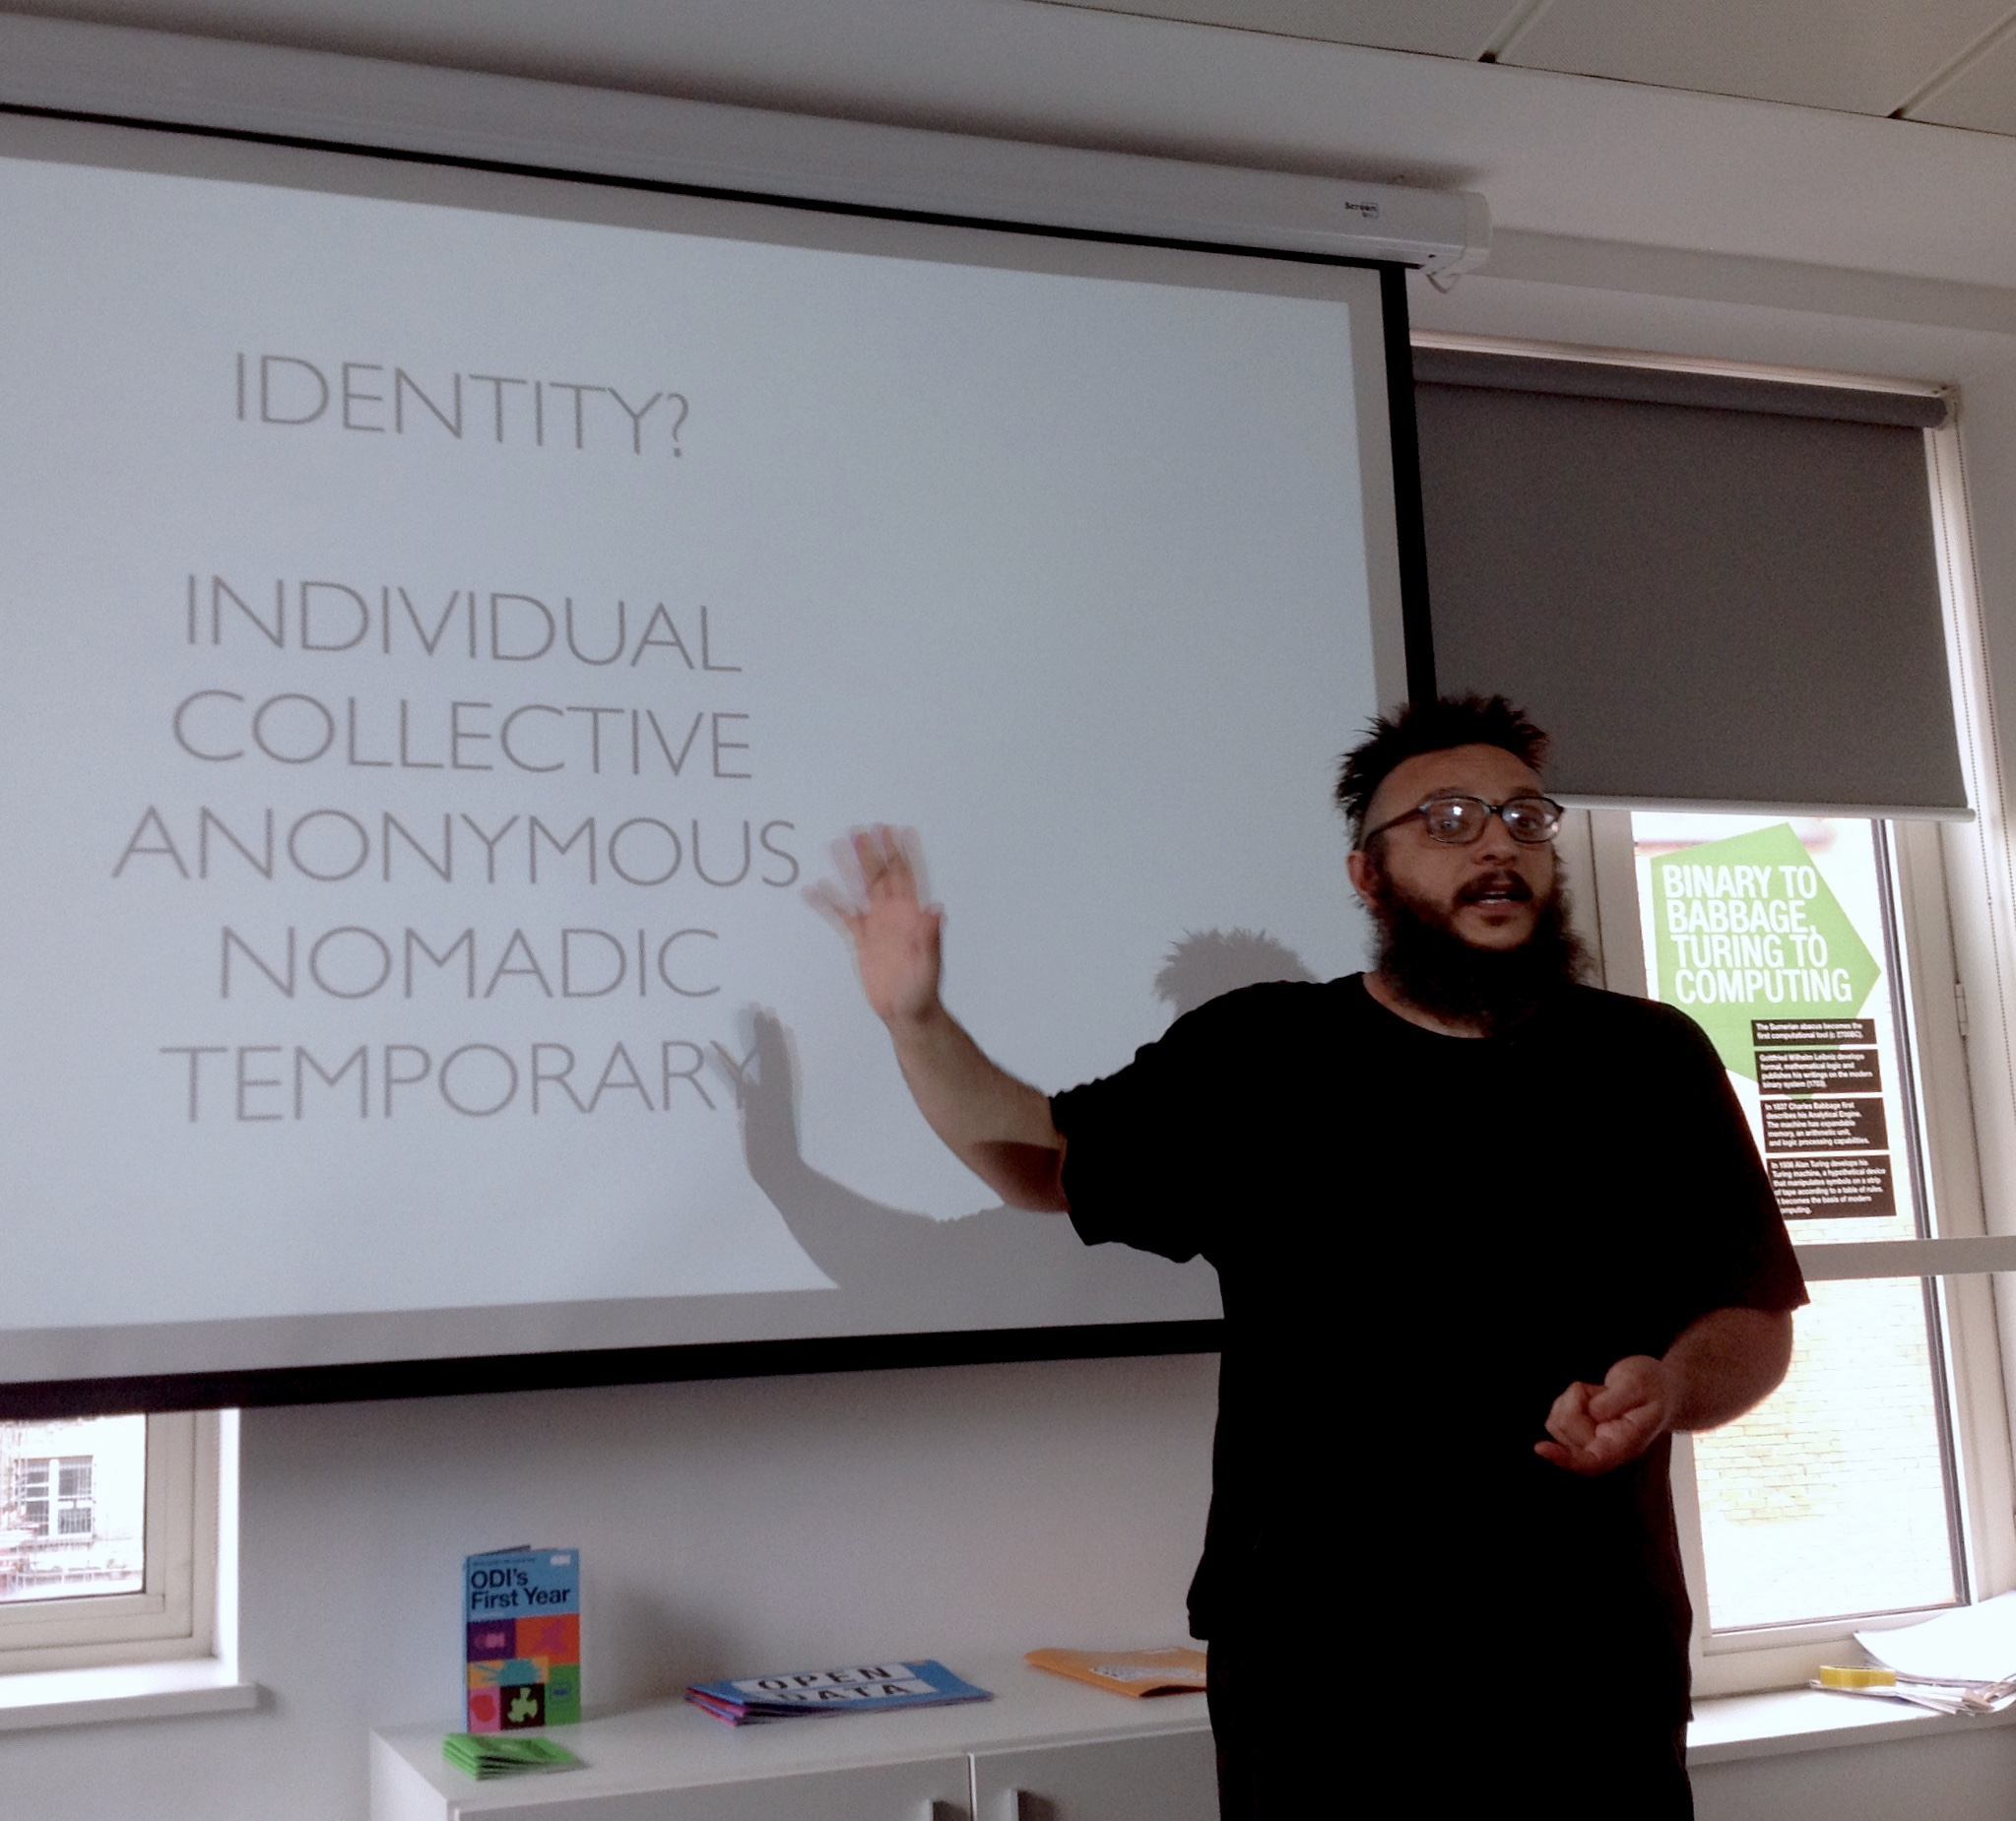 Ubiquitous Commons talk at ODI - Open Data Institute (London)